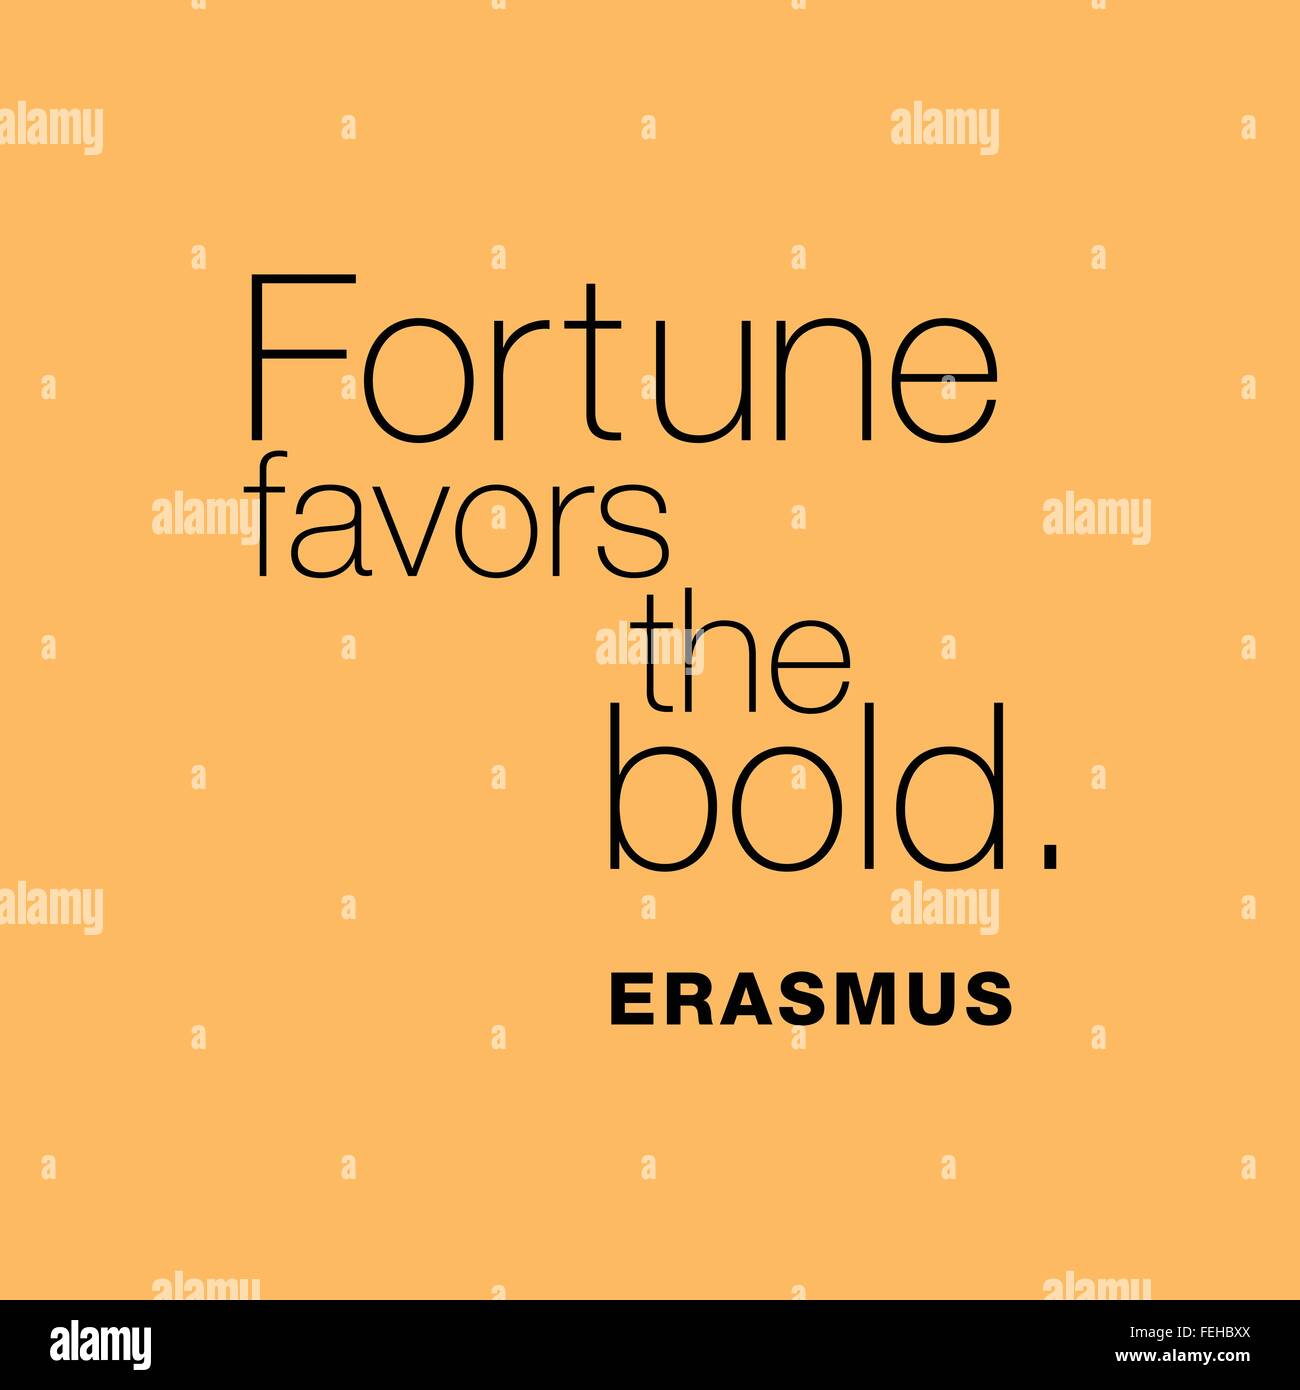 'Fortune favors the bold.' Erasmus - Stock Vector